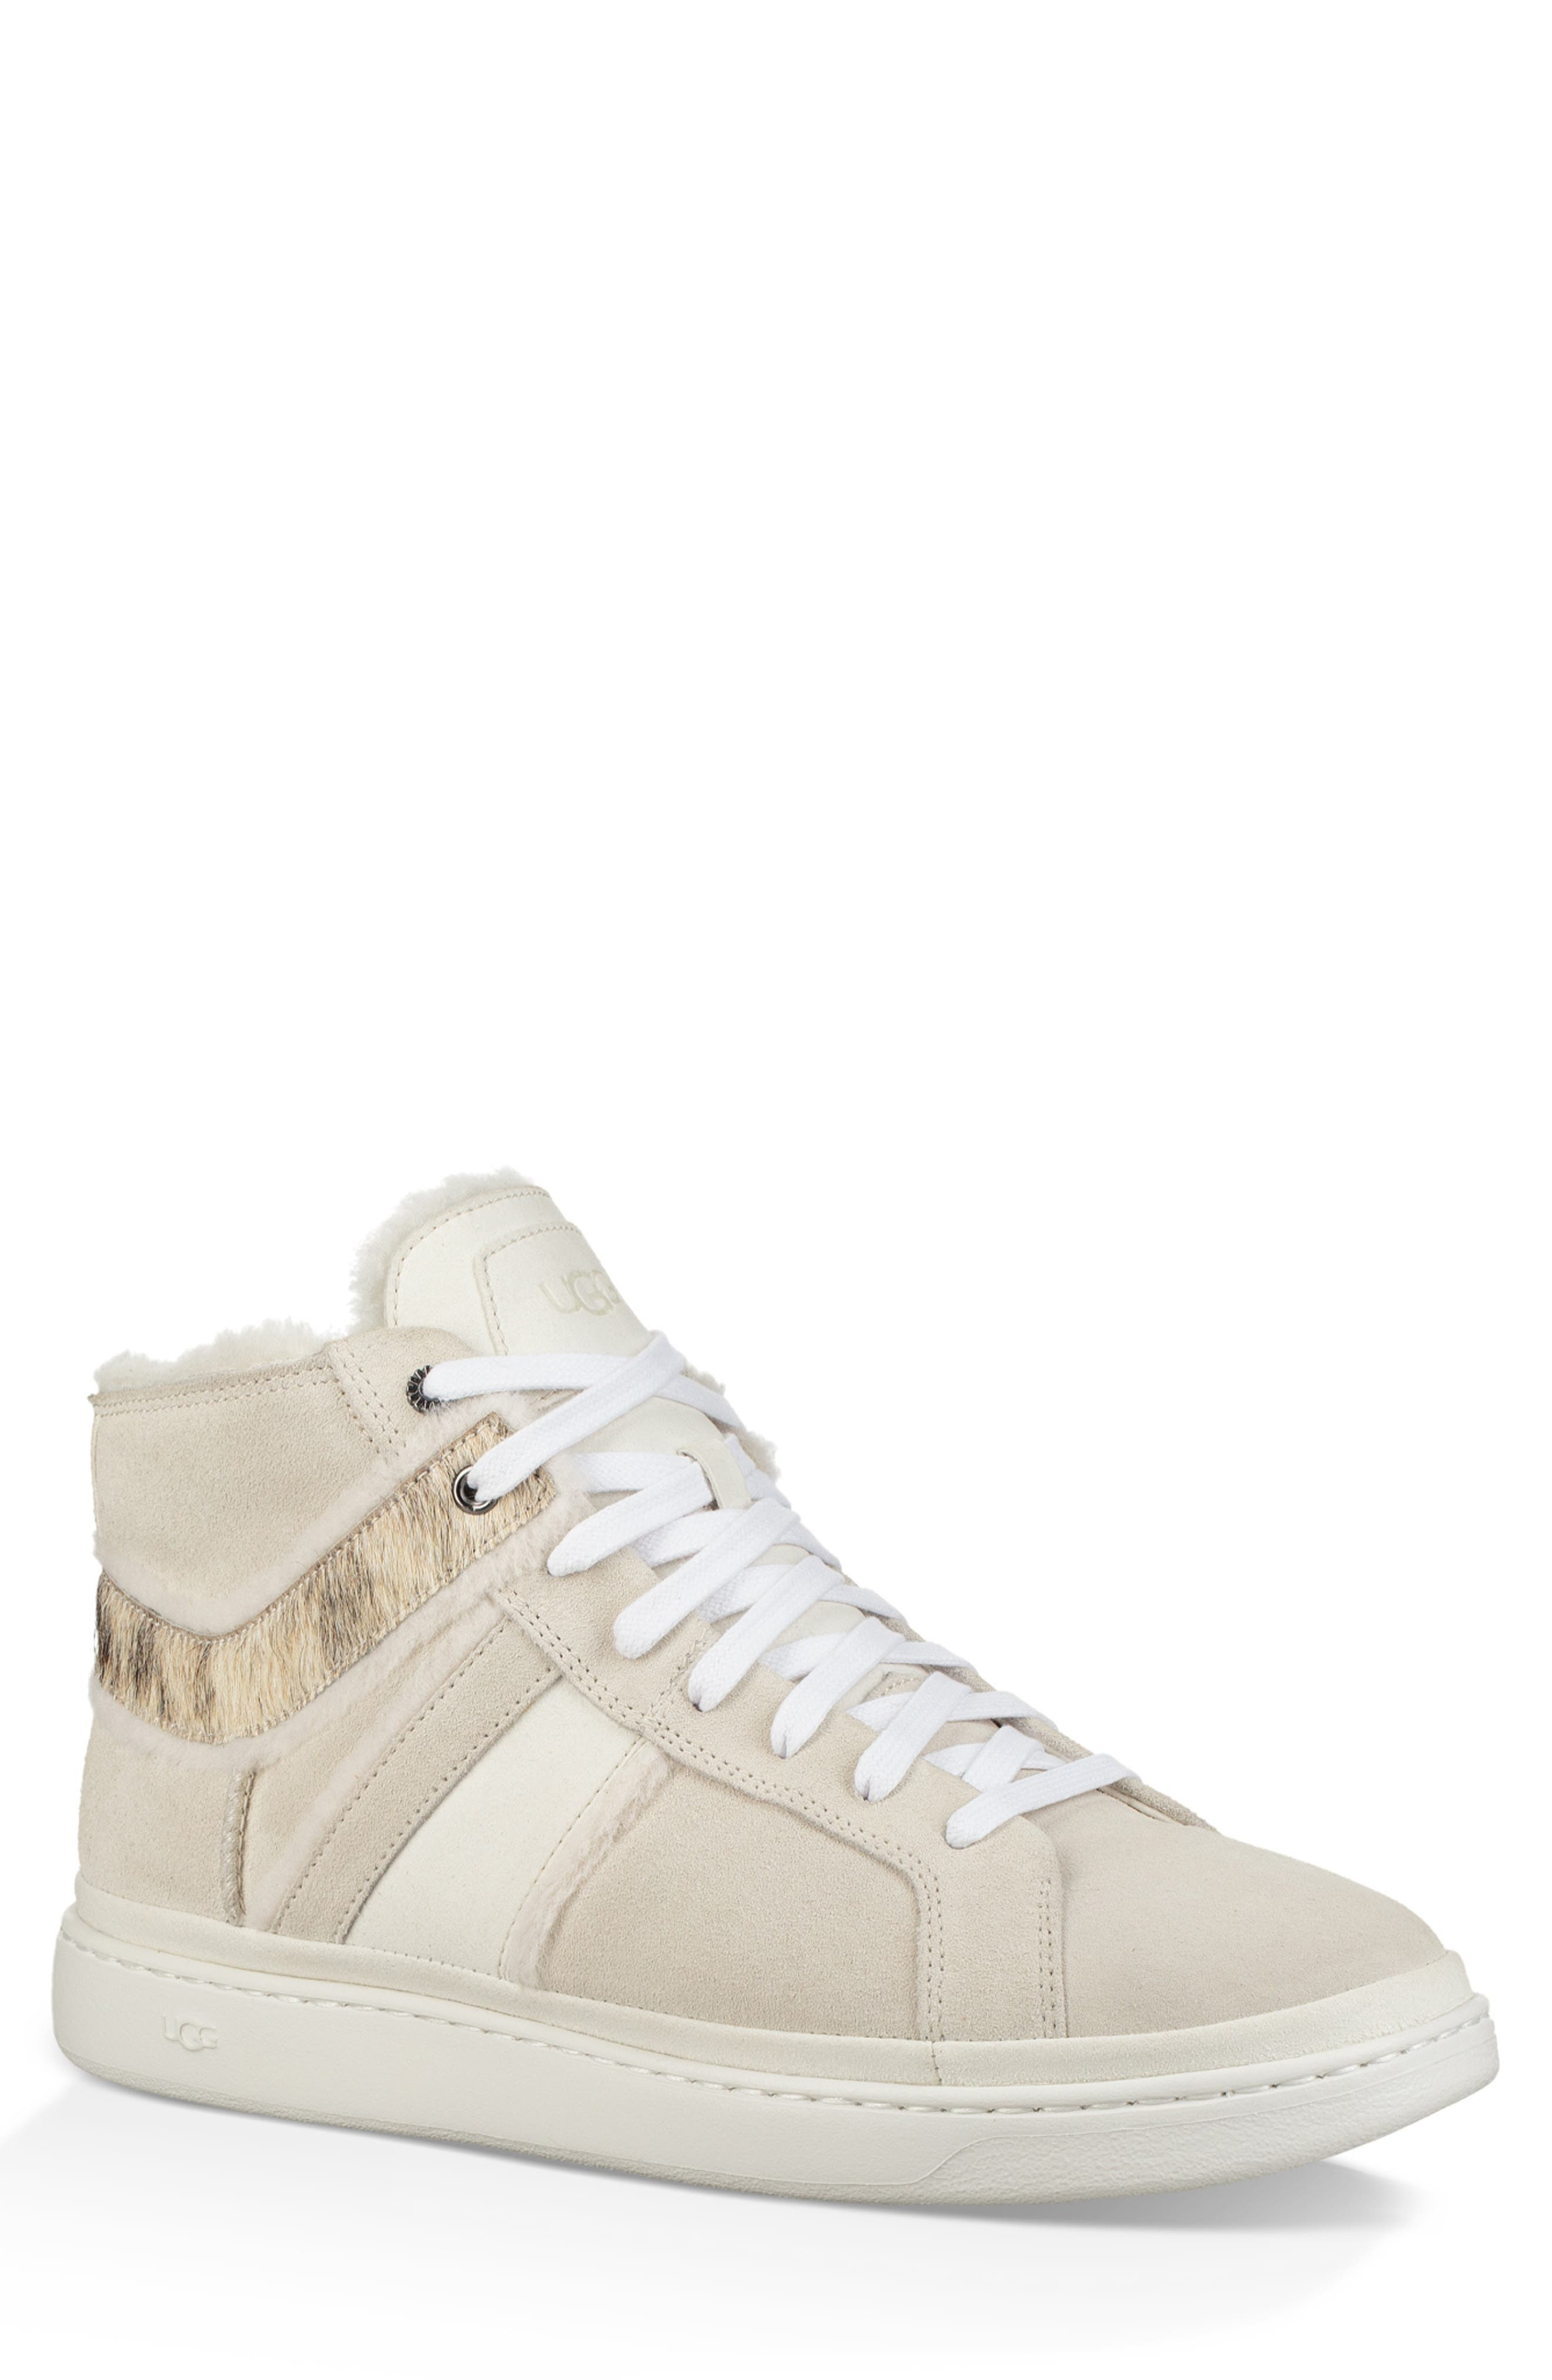 Cali High Top Sneaker,                         Main,                         color, WHITE